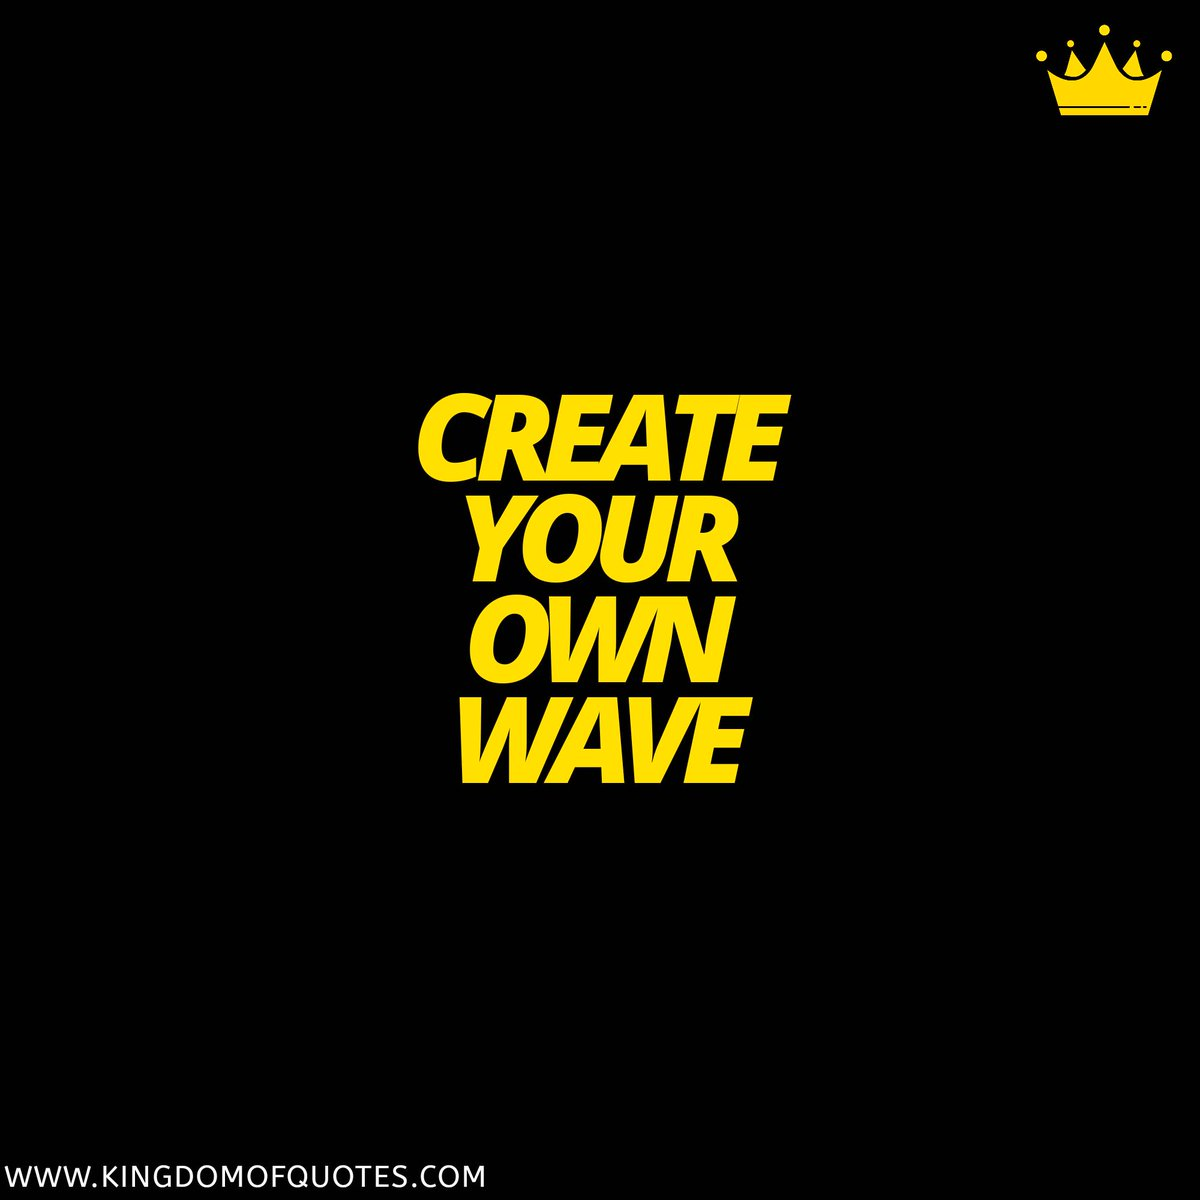 Create your own wave.  #MotivationalQuotes #Kingdomofquotes #QuoteOfTheDay #Quotes #quotestoliveby #lifequotes #inspirationalquotes #motivationalquotes #quotestagram #instaquotes #dailyquotespic.twitter.com/PyKTnDIbzG